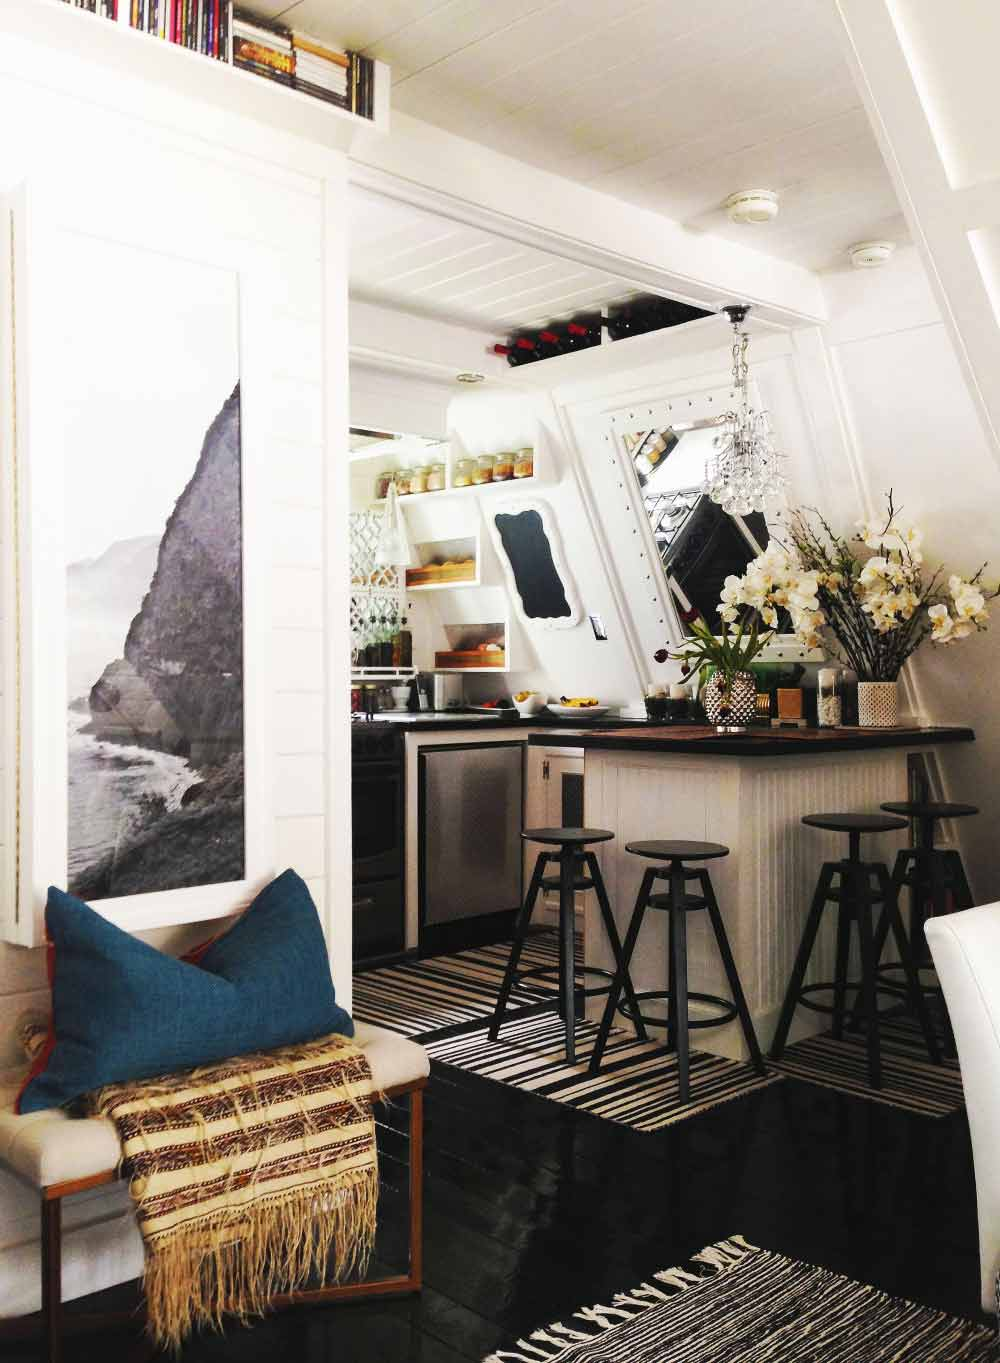 Design A-Z: A-frames on Design*Sponge